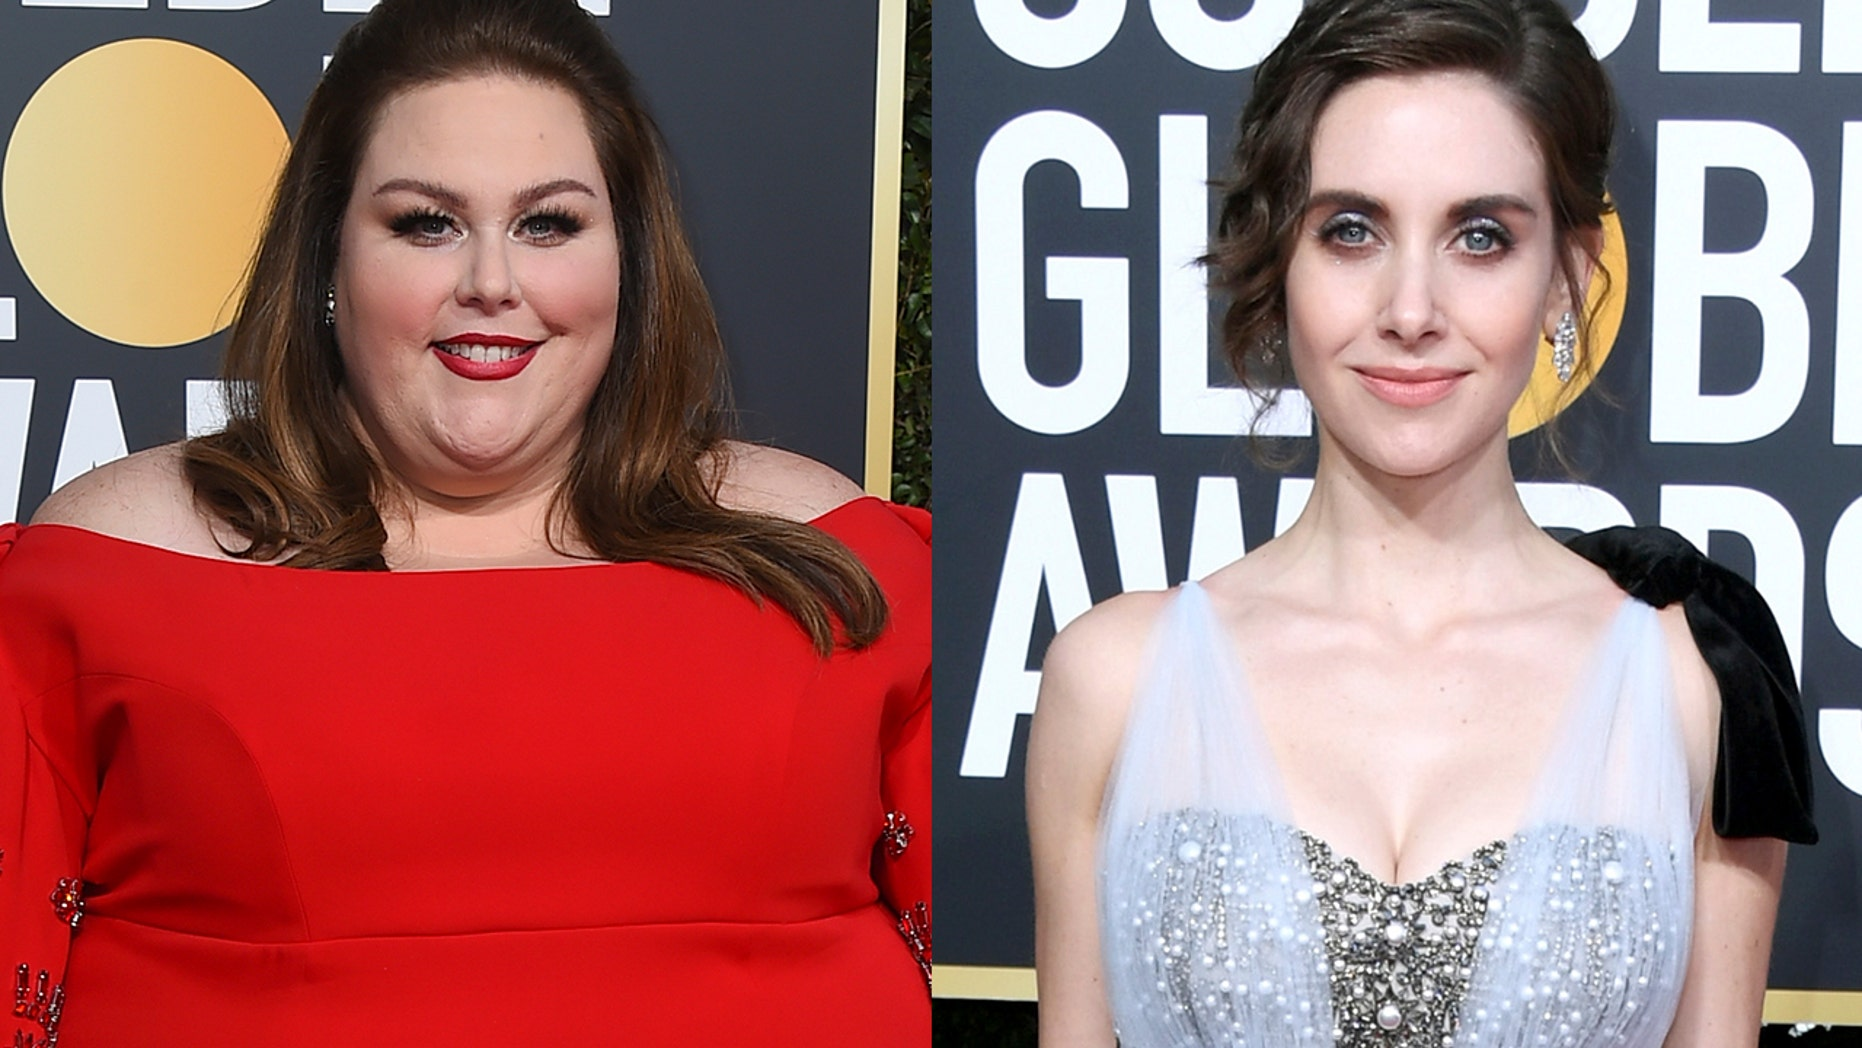 Alison Brie Responds to Chrissy Metz Diss Rumors: 'Nothing But Love'